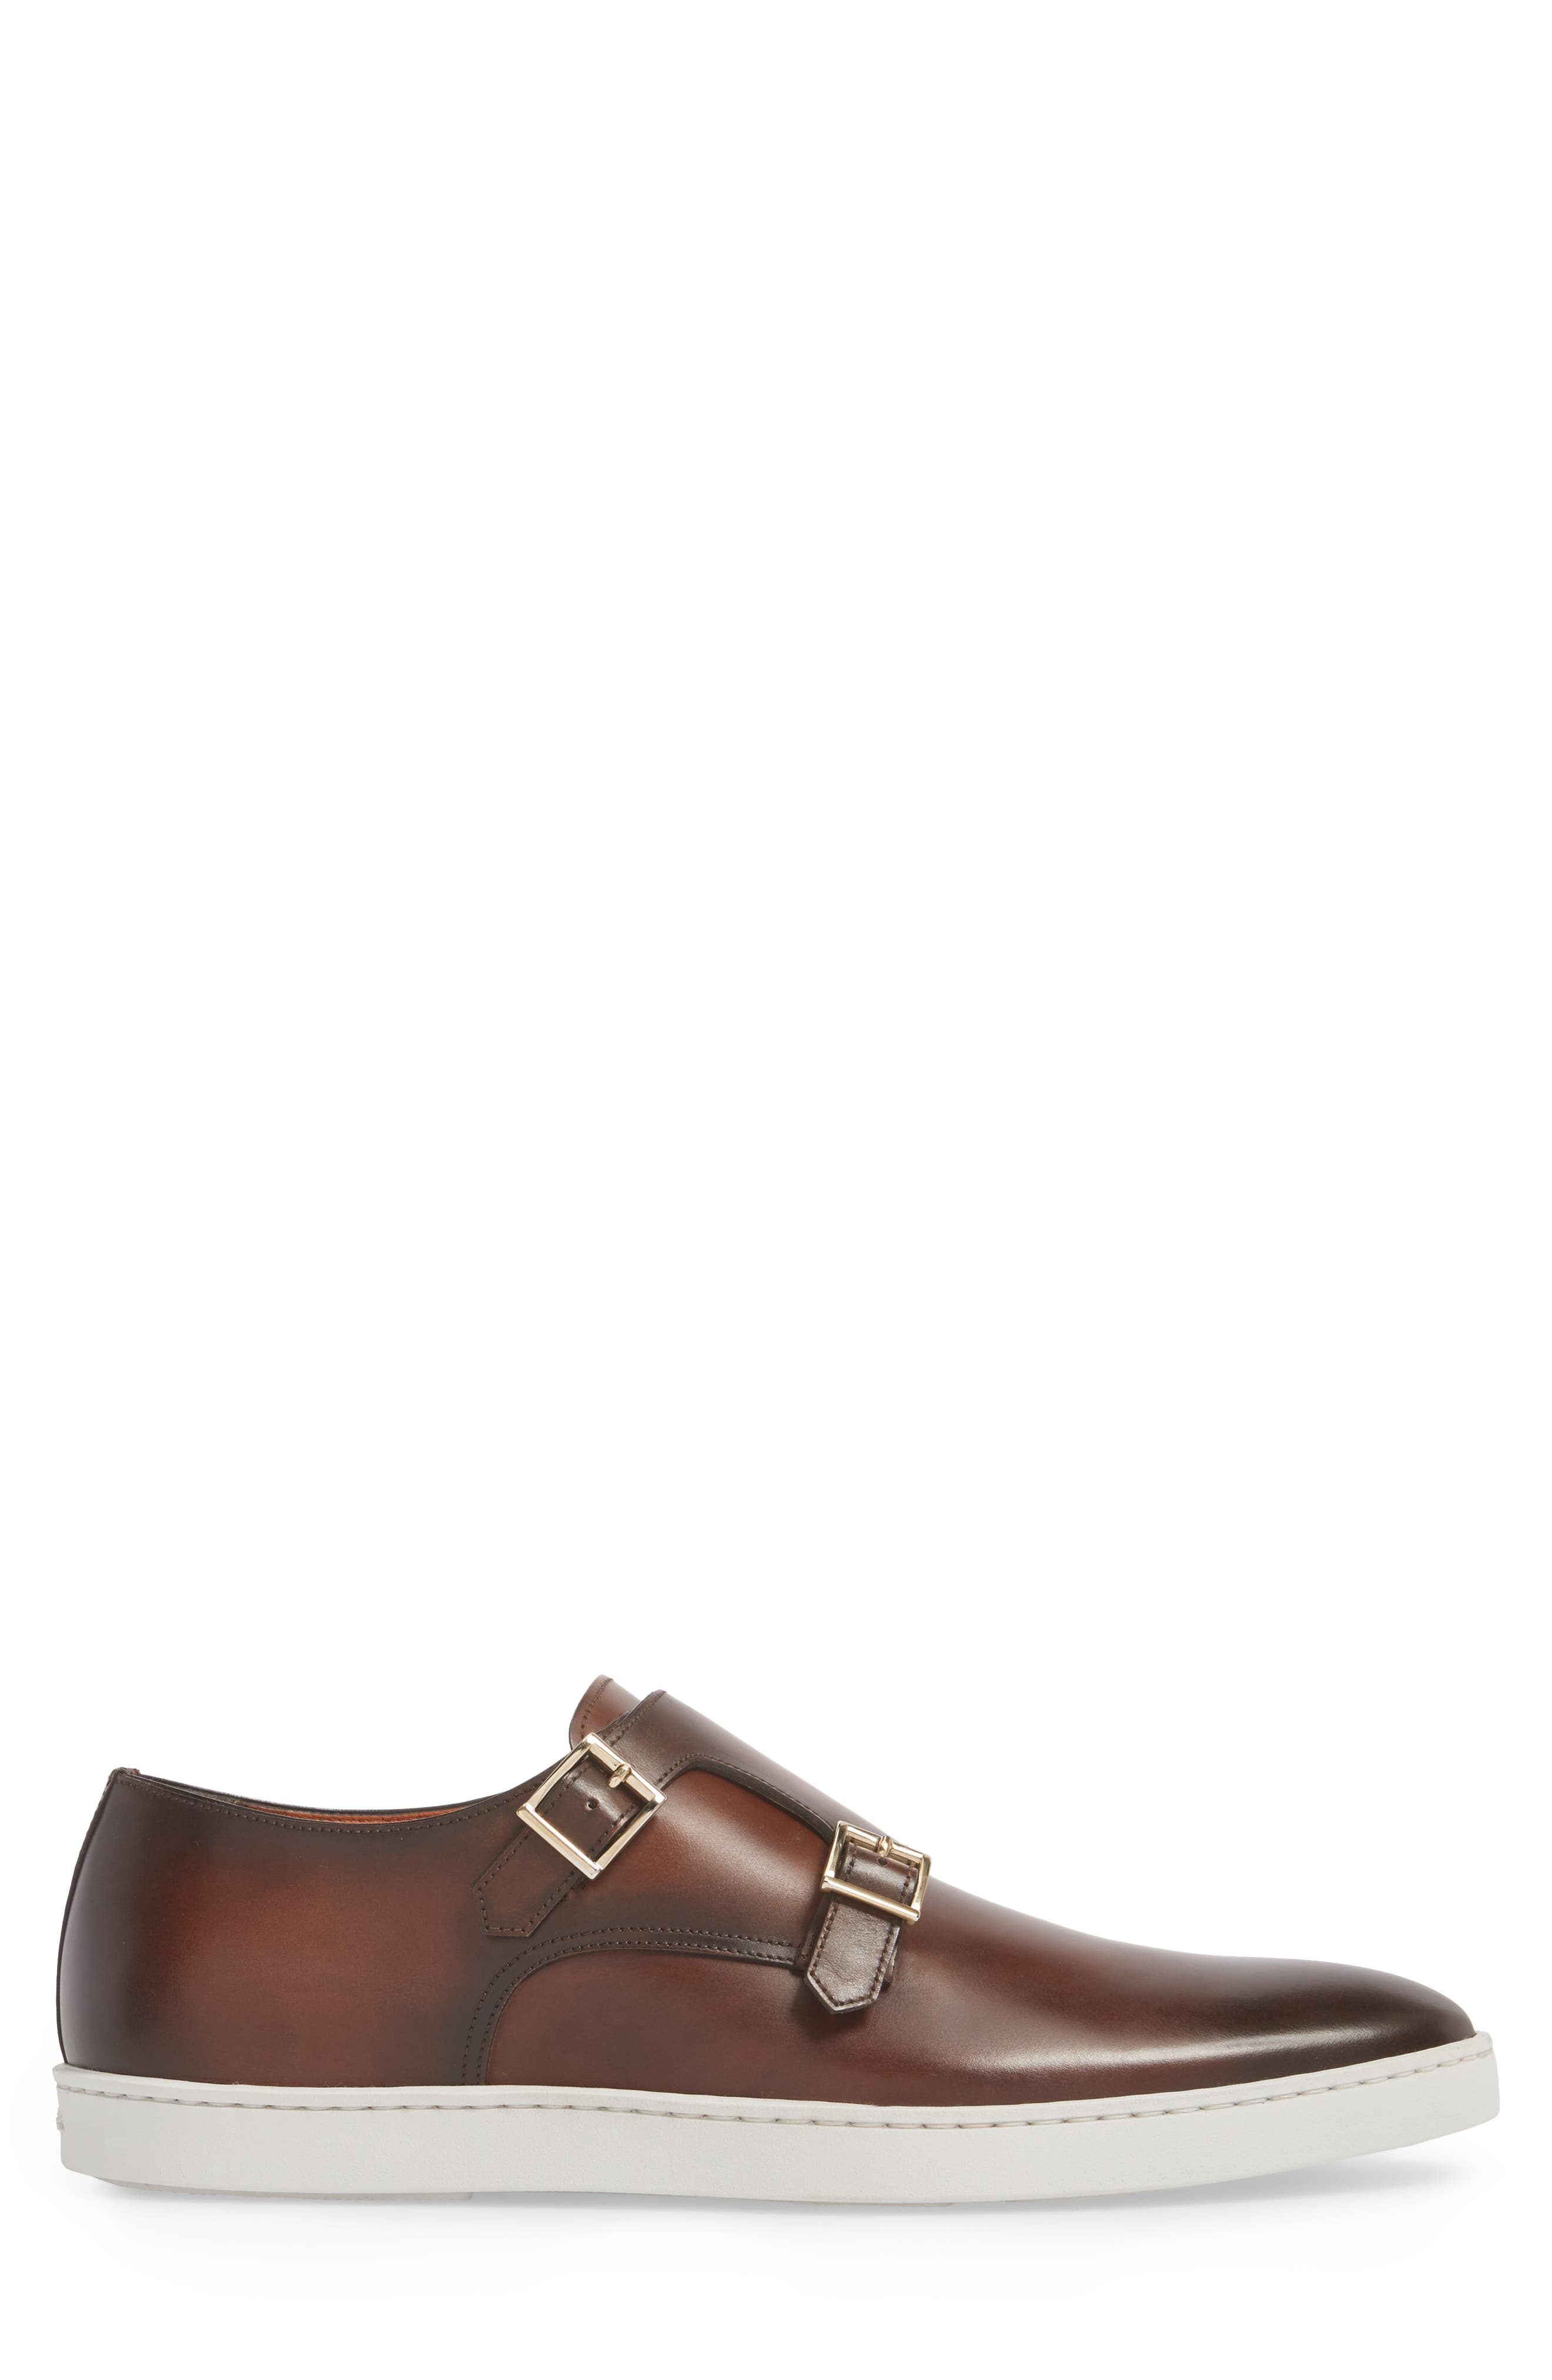 Freemont Double Monk Strap Shoe,                             Alternate thumbnail 3, color,                             Brown